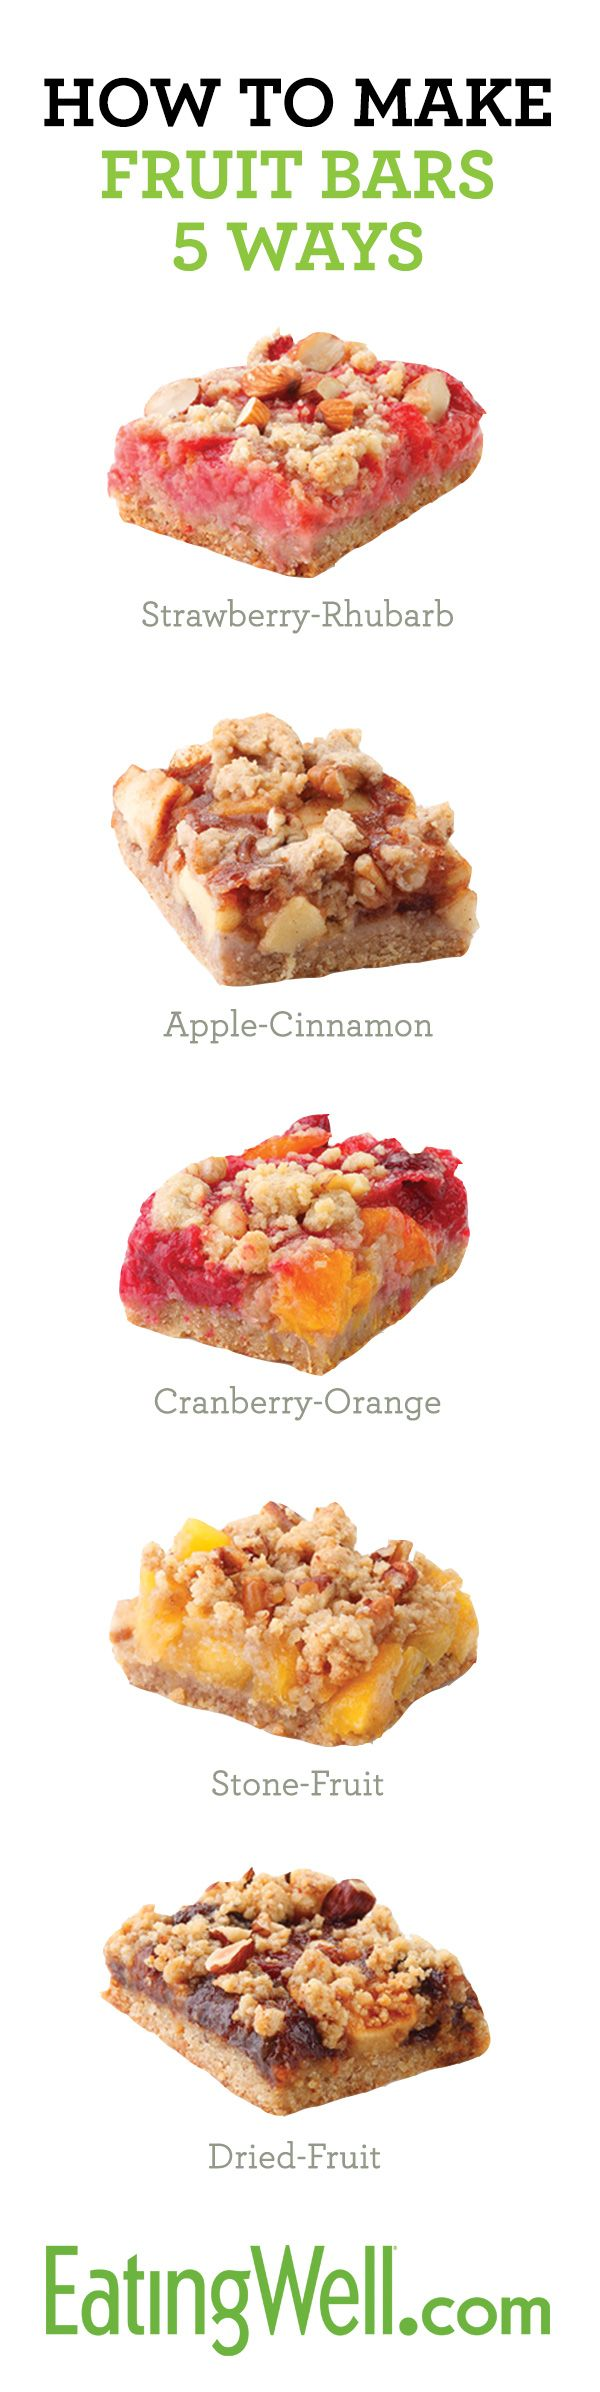 How to make fruit bars with peaches, apples, strawberries, blackberries, cranberries, etc.